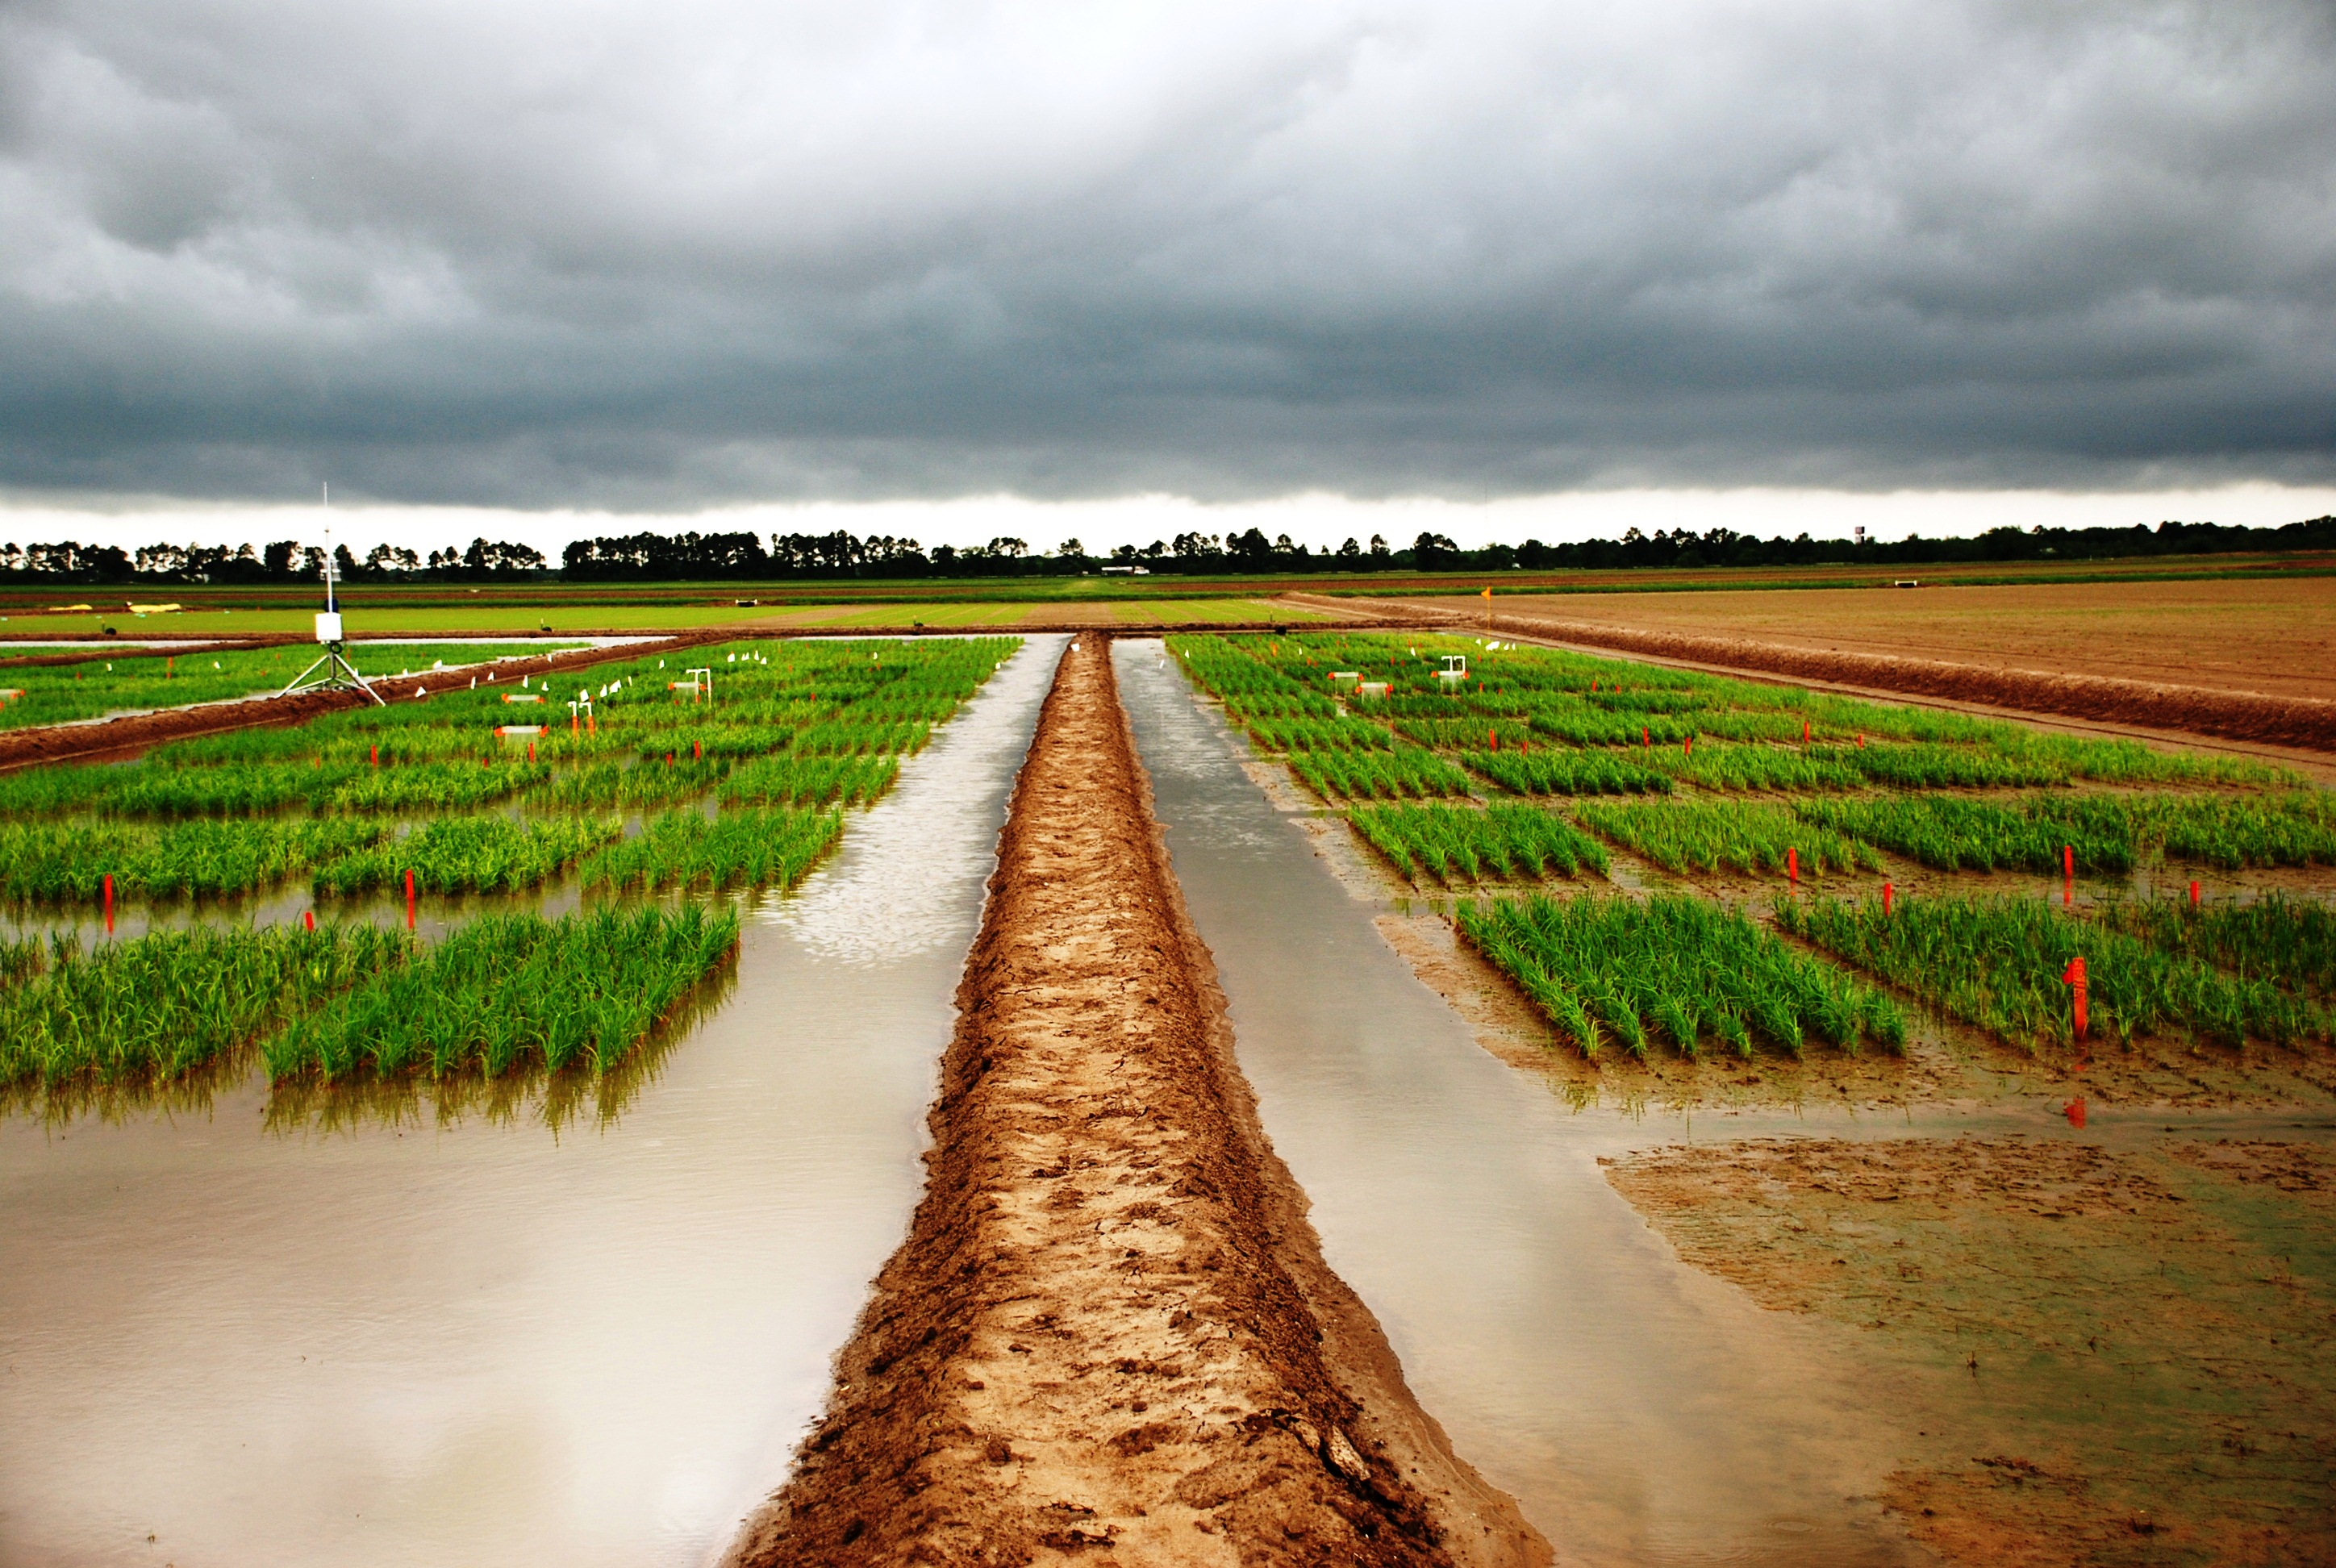 Rice Researchers Must Respond to Emerging Issues